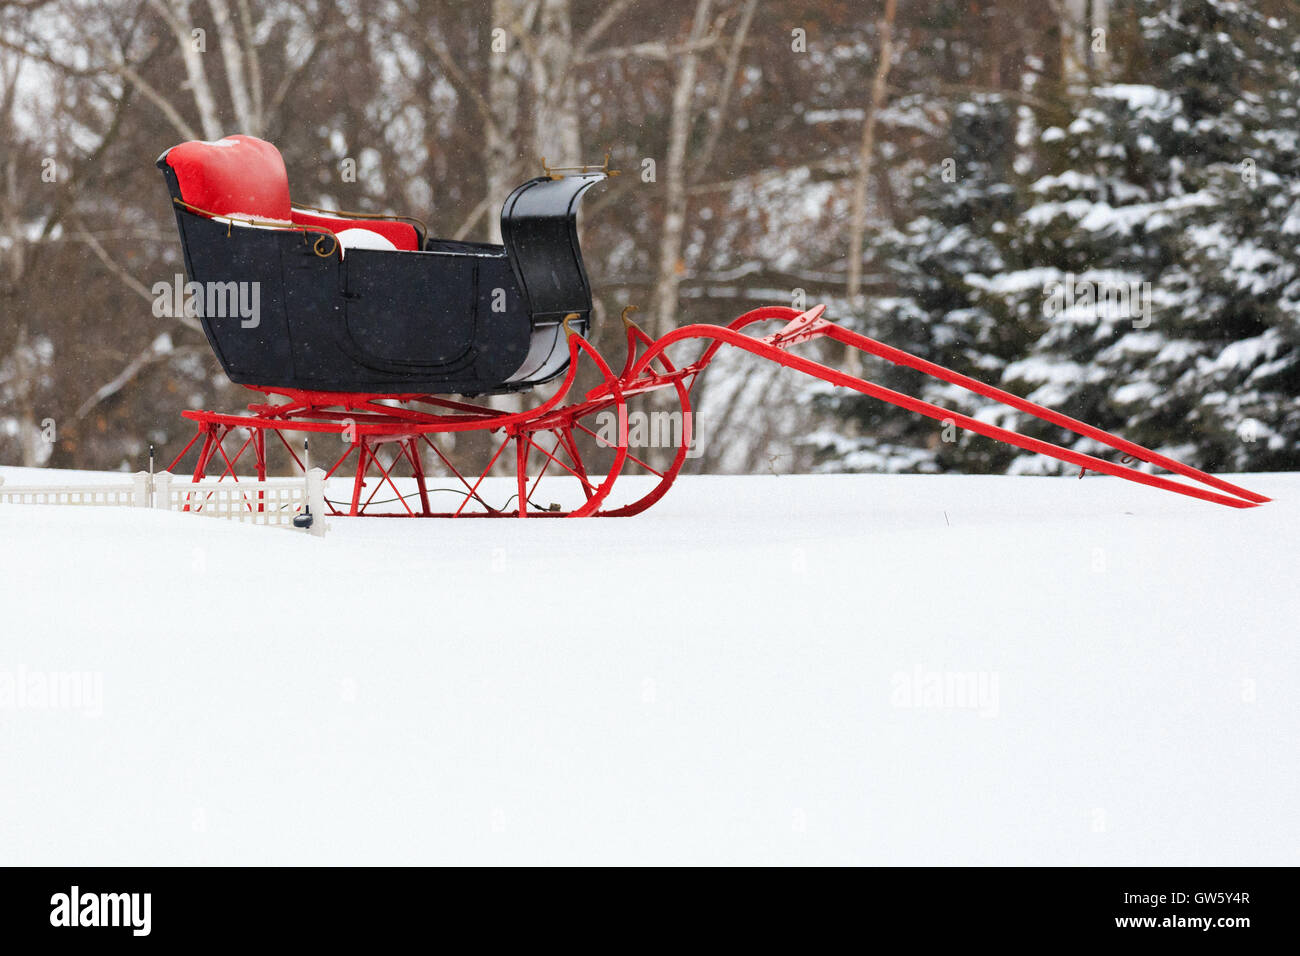 Antique horse-drawn sleigh on a snowy December day. Stock Photo